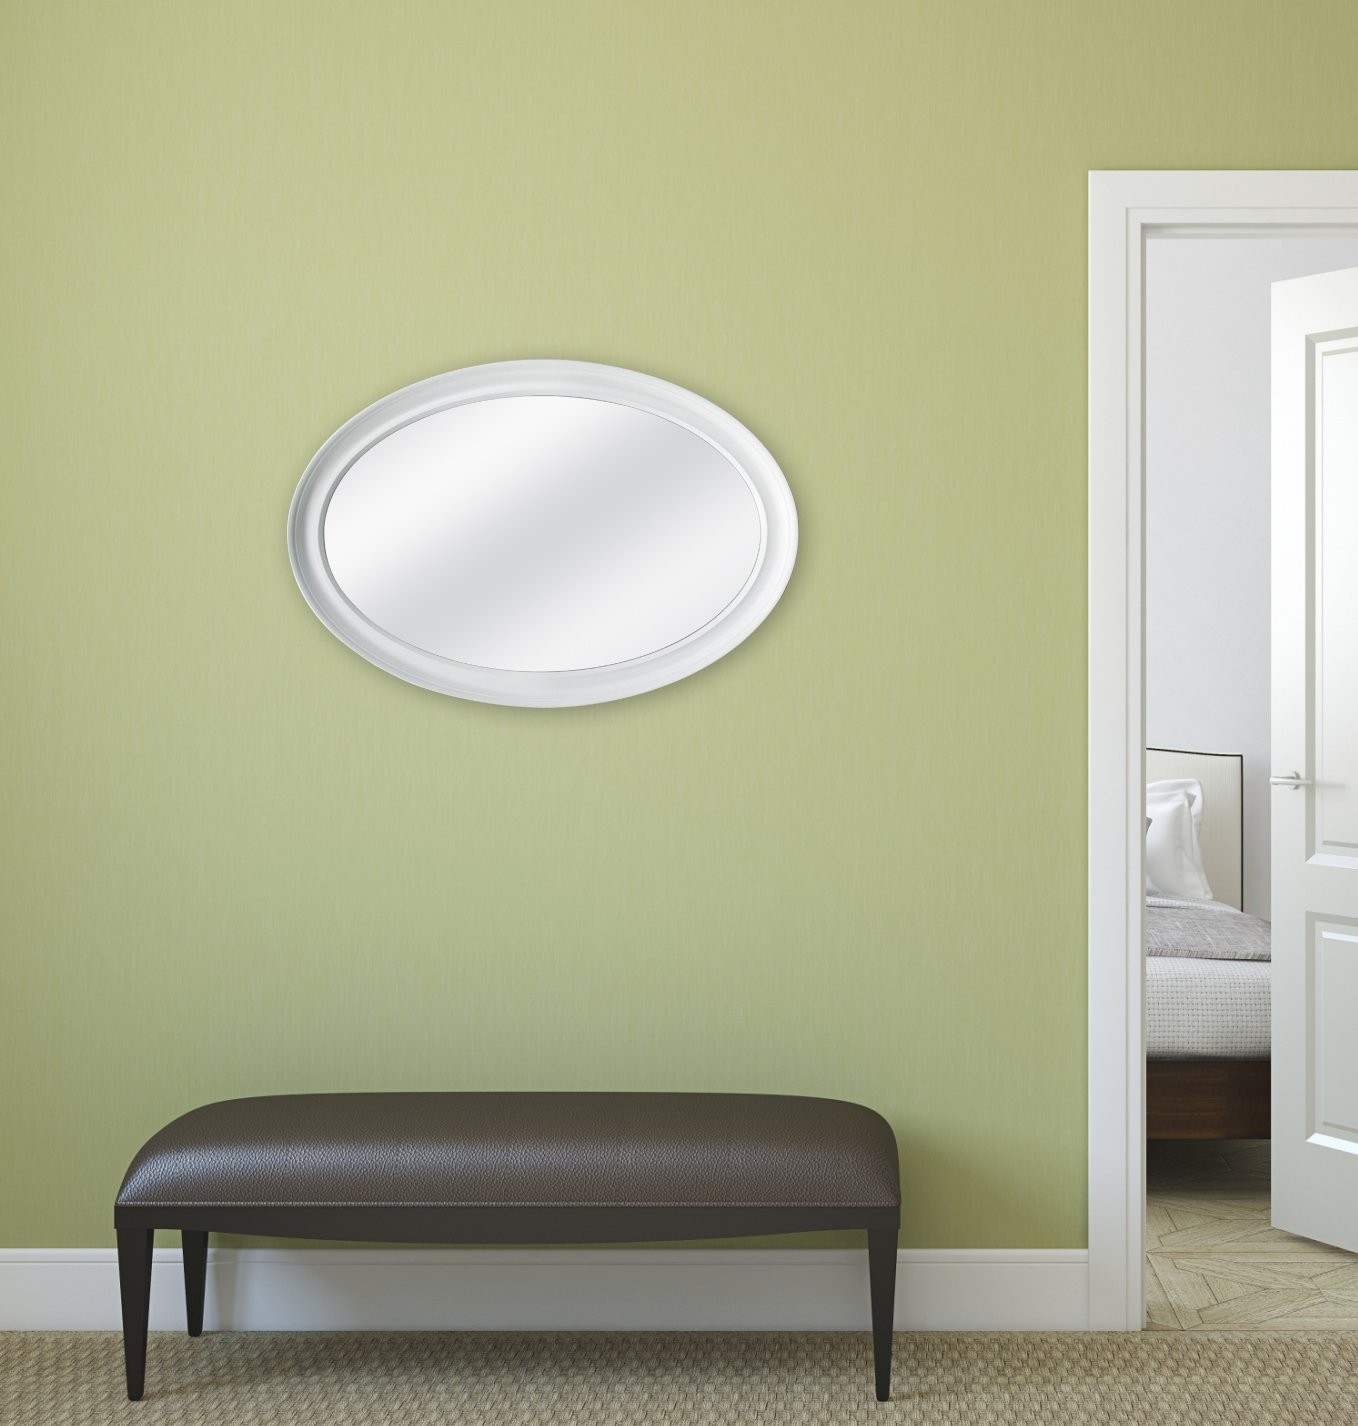 Amazon.com: MCS Oval Wall Mirror, 21x31 Inch Overall Size, White ...